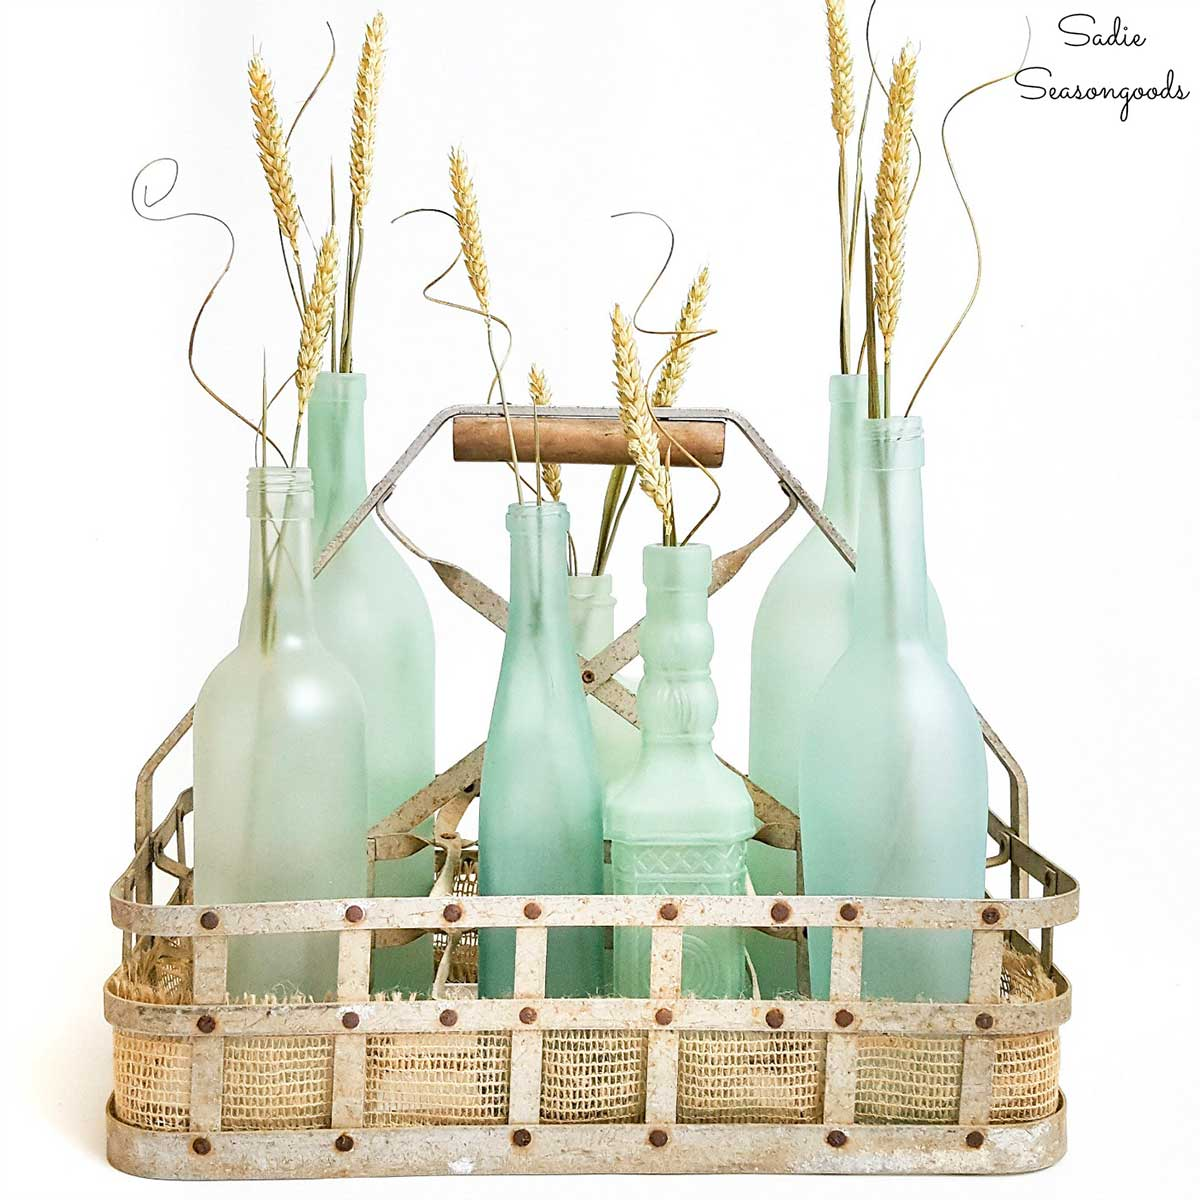 6 repurposed bottles painted in the color sea glass and sitting in a bottle carrier.